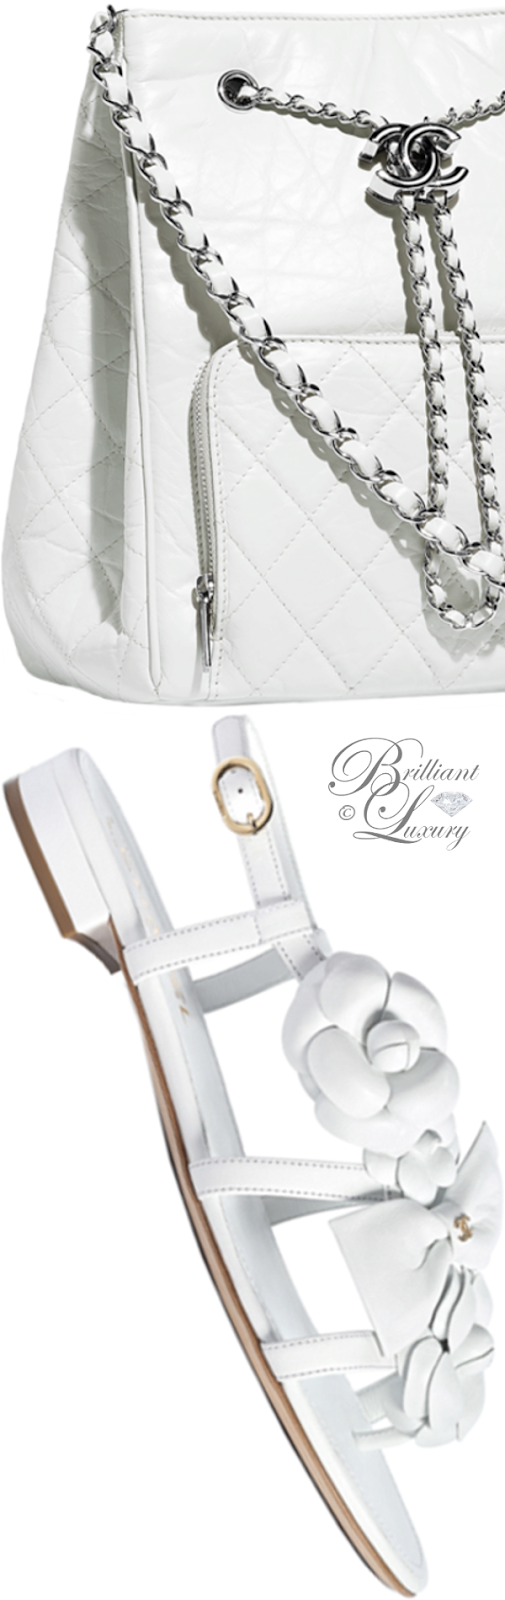 Brilliant Luxury ♦ Chanel white drawstring bag and Chanel white flower flat sandals